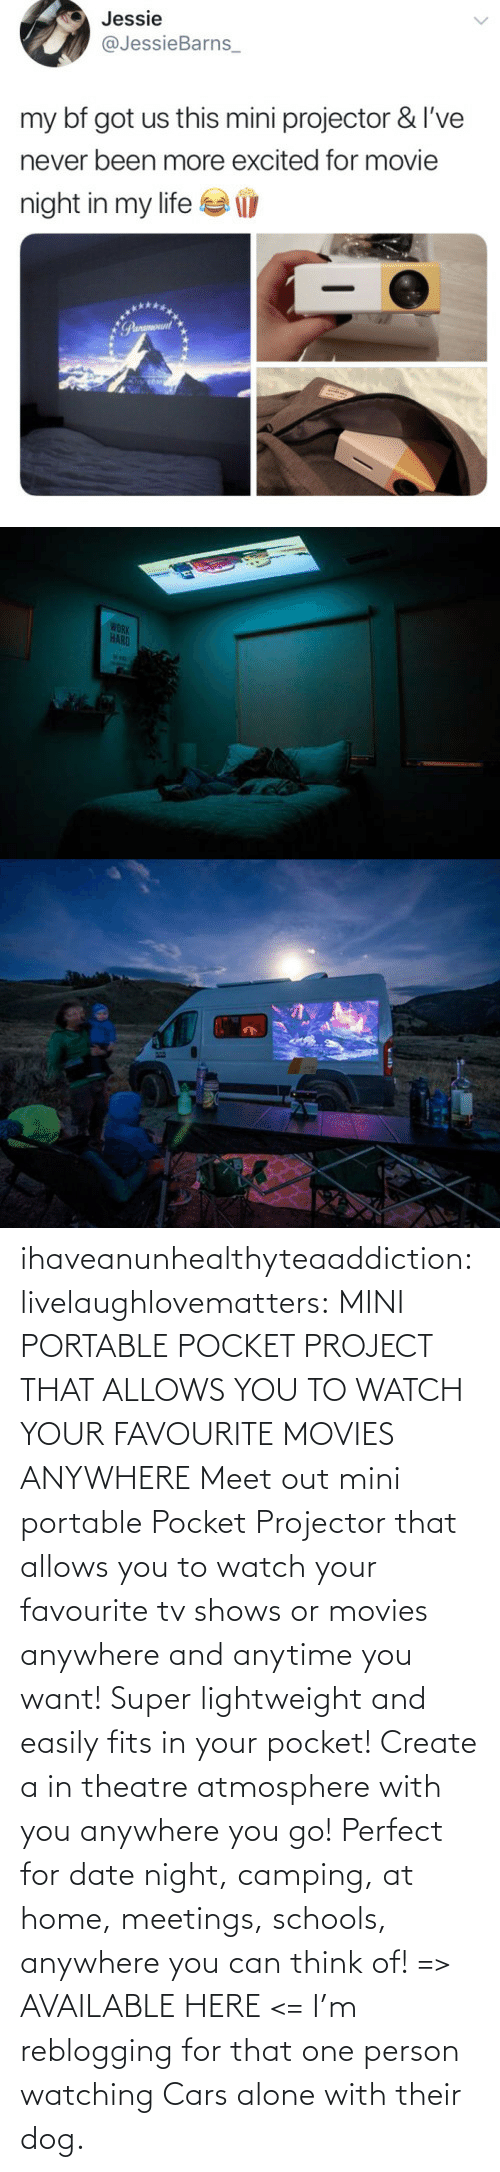 create a: ihaveanunhealthyteaaddiction:  livelaughlovematters: MINI PORTABLE POCKET PROJECT THAT ALLOWS YOU TO WATCH YOUR FAVOURITE MOVIES ANYWHERE Meet out mini portable Pocket Projector that allows you to watch your favourite tv shows or movies anywhere and anytime you want! Super lightweight and easily fits in your pocket! Create a in theatre atmosphere with you anywhere you go! Perfect for date night, camping, at home, meetings, schools, anywhere you can think of! => AVAILABLE HERE <=    I'm reblogging for that one person watching Cars alone with their dog.